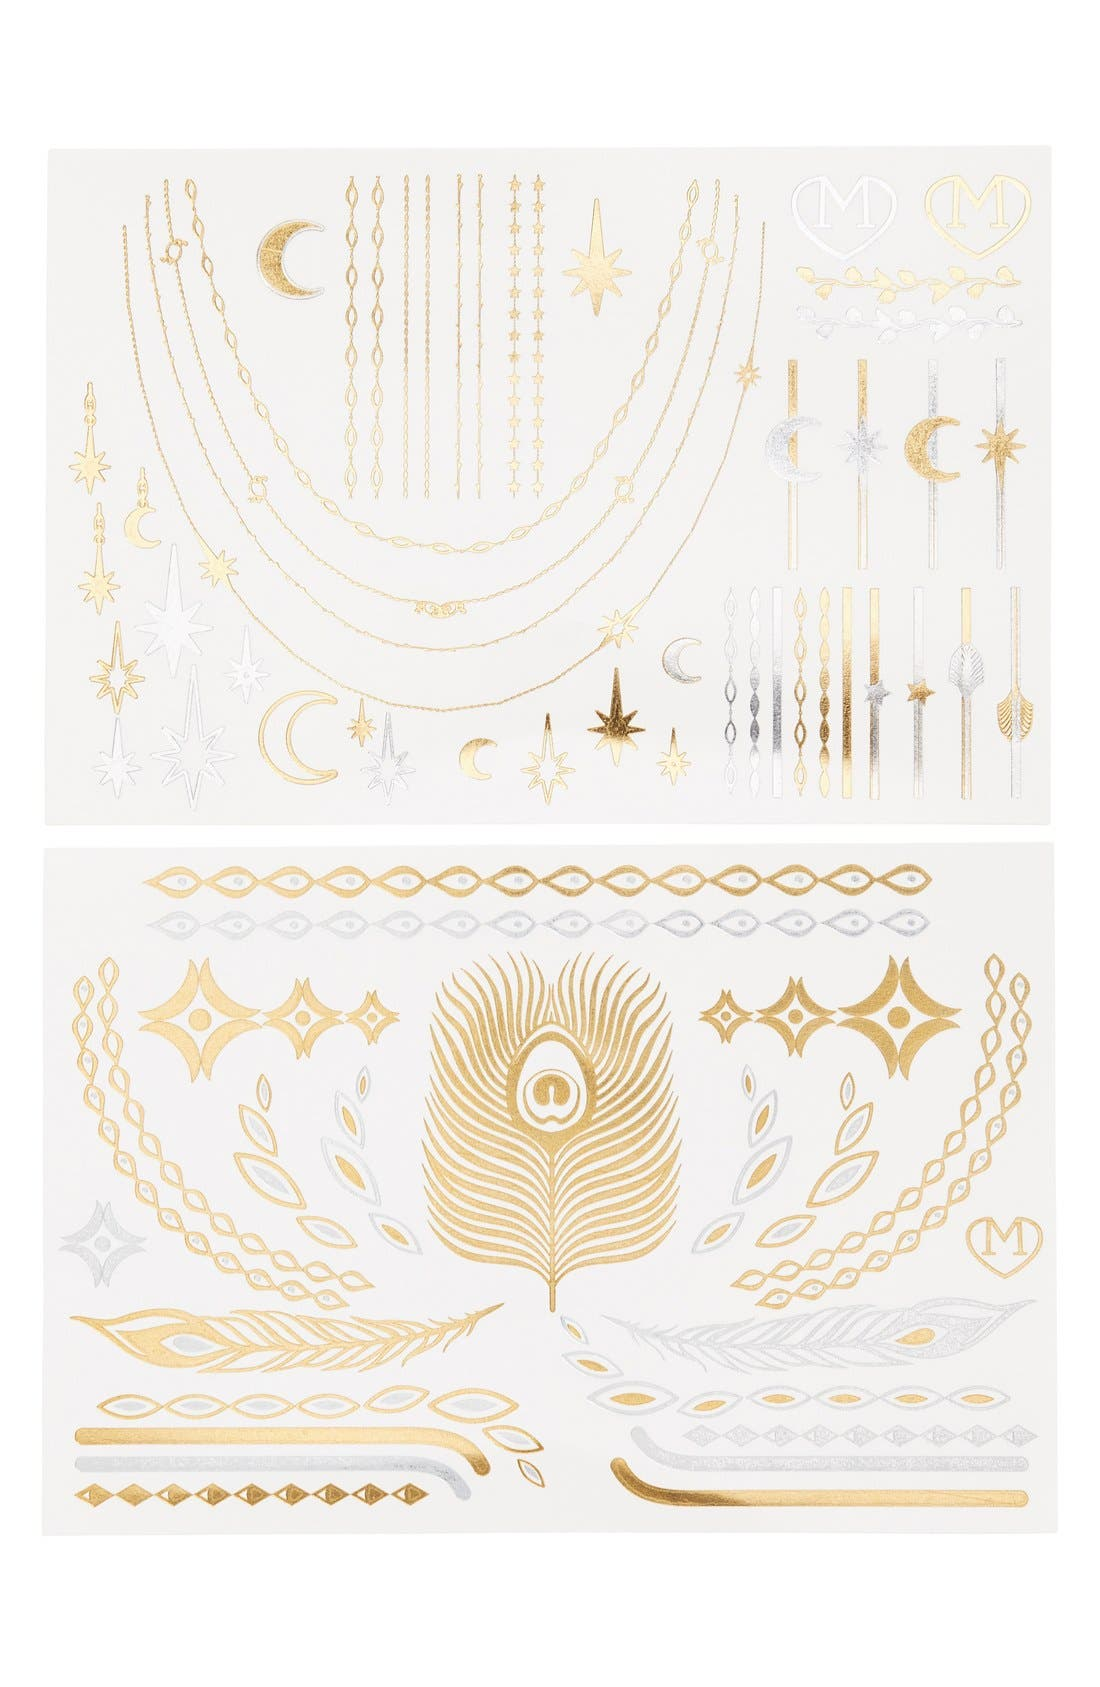 Alternate Image 1 Selected - Madness Accessories 'Boho' Temporary Flash Tattoos (2-Pack)